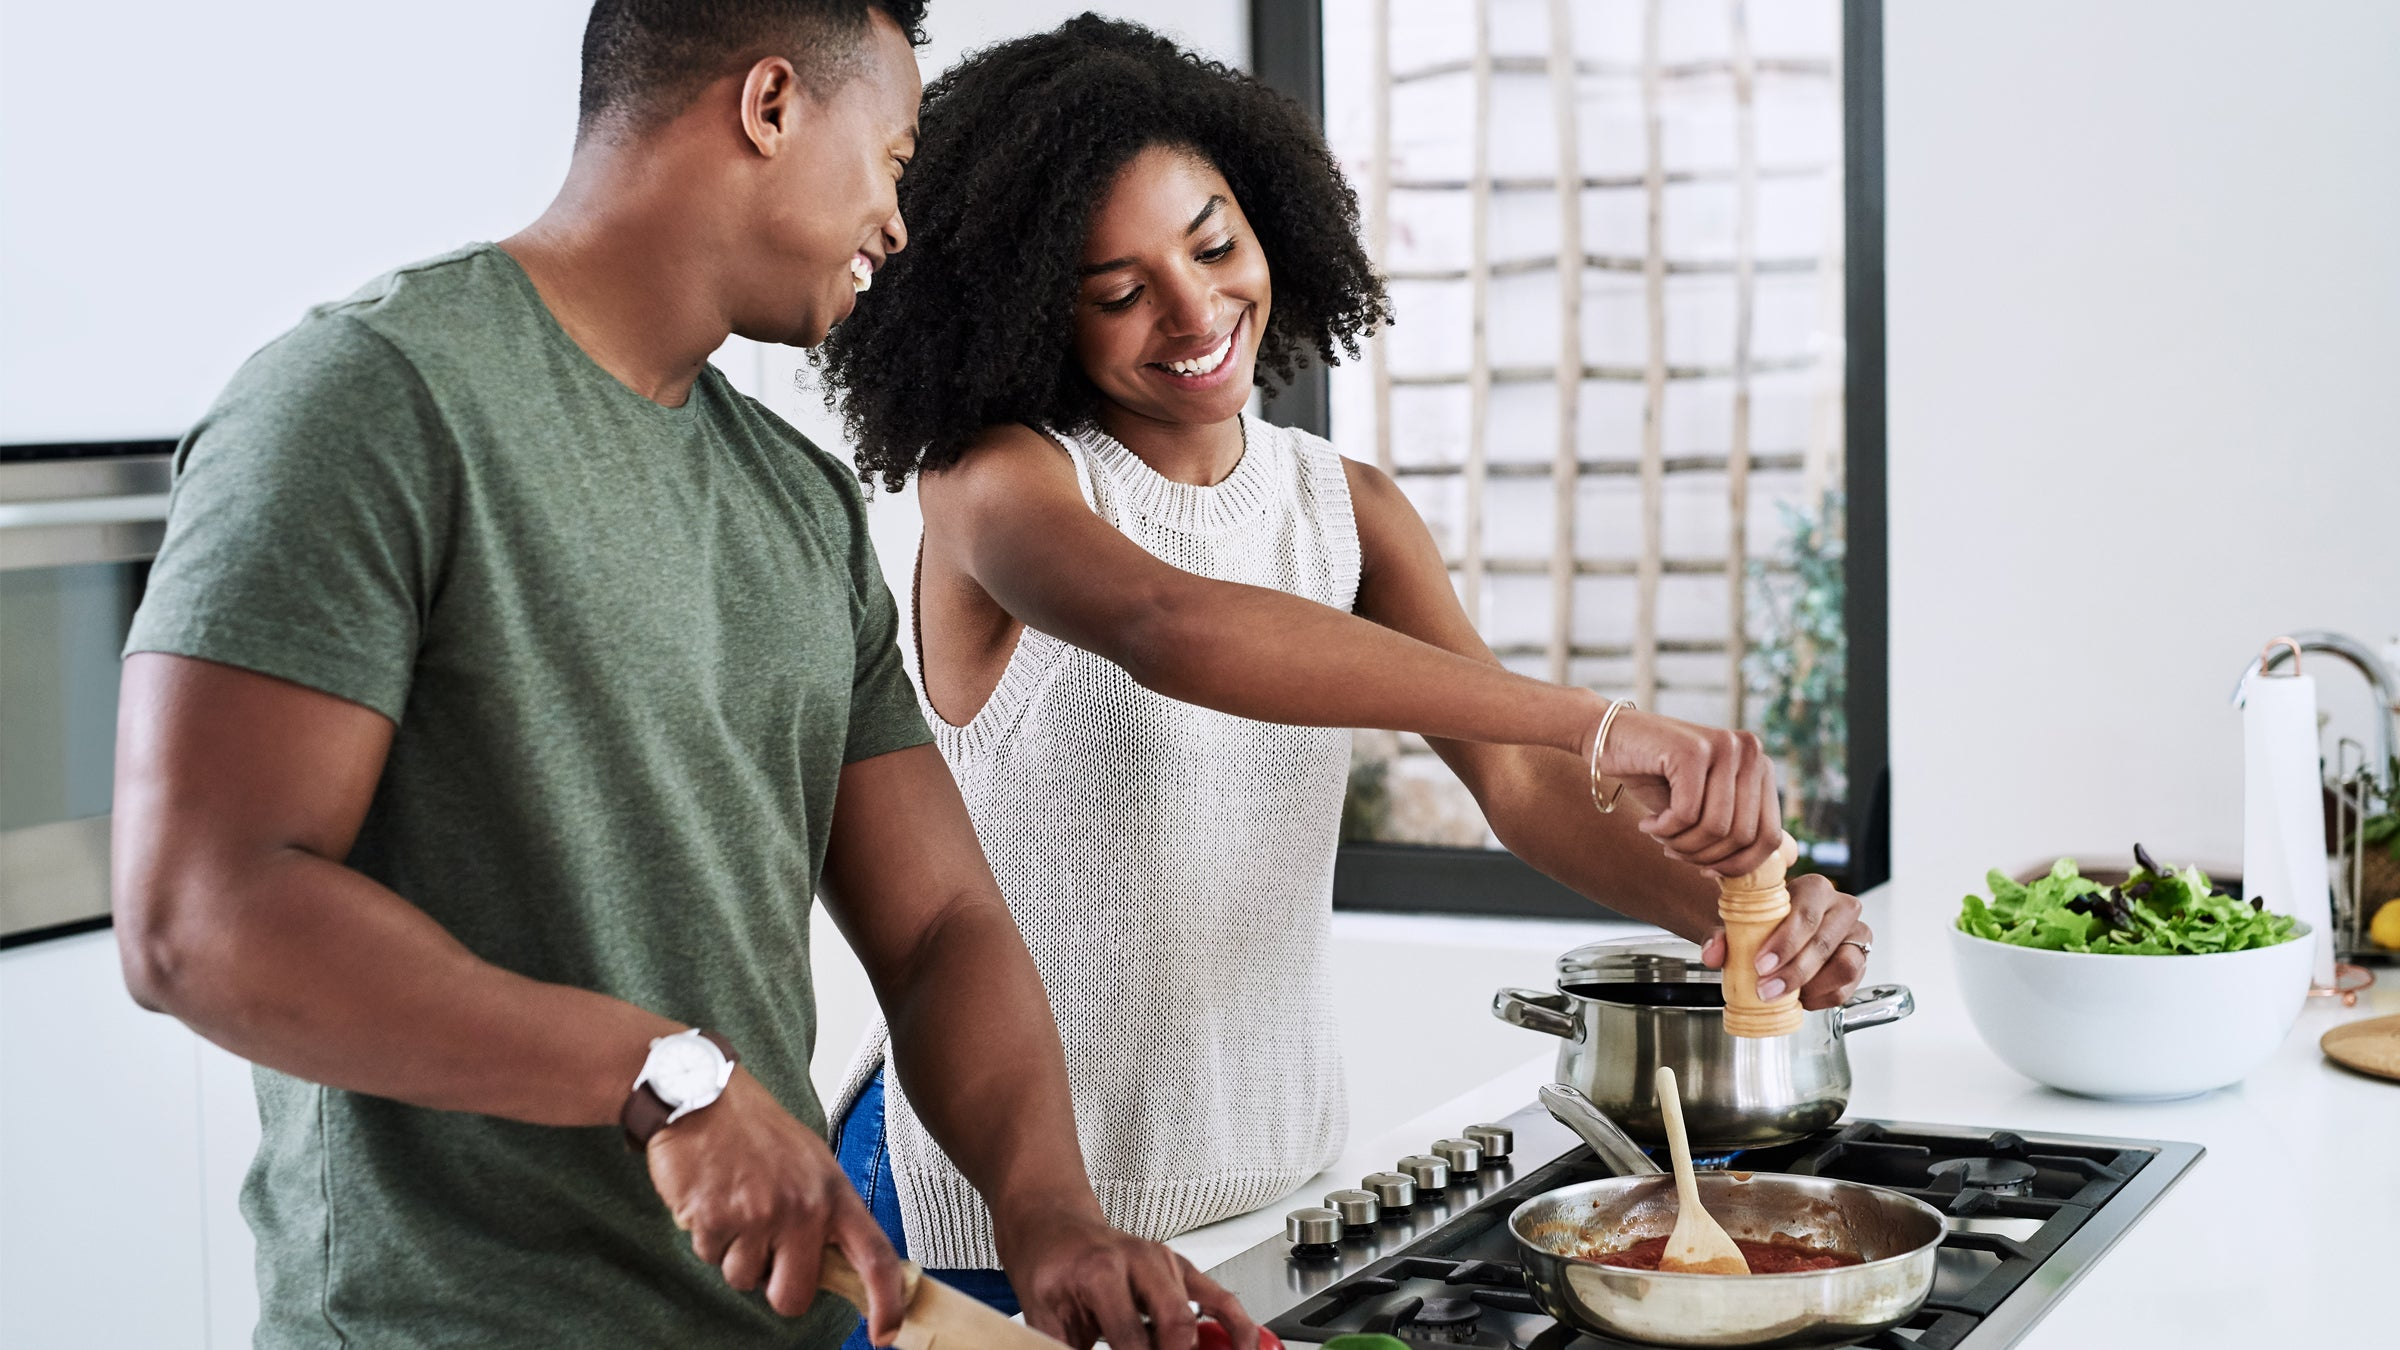 7 Ways to Live a Healthier, Happier Life in 2021